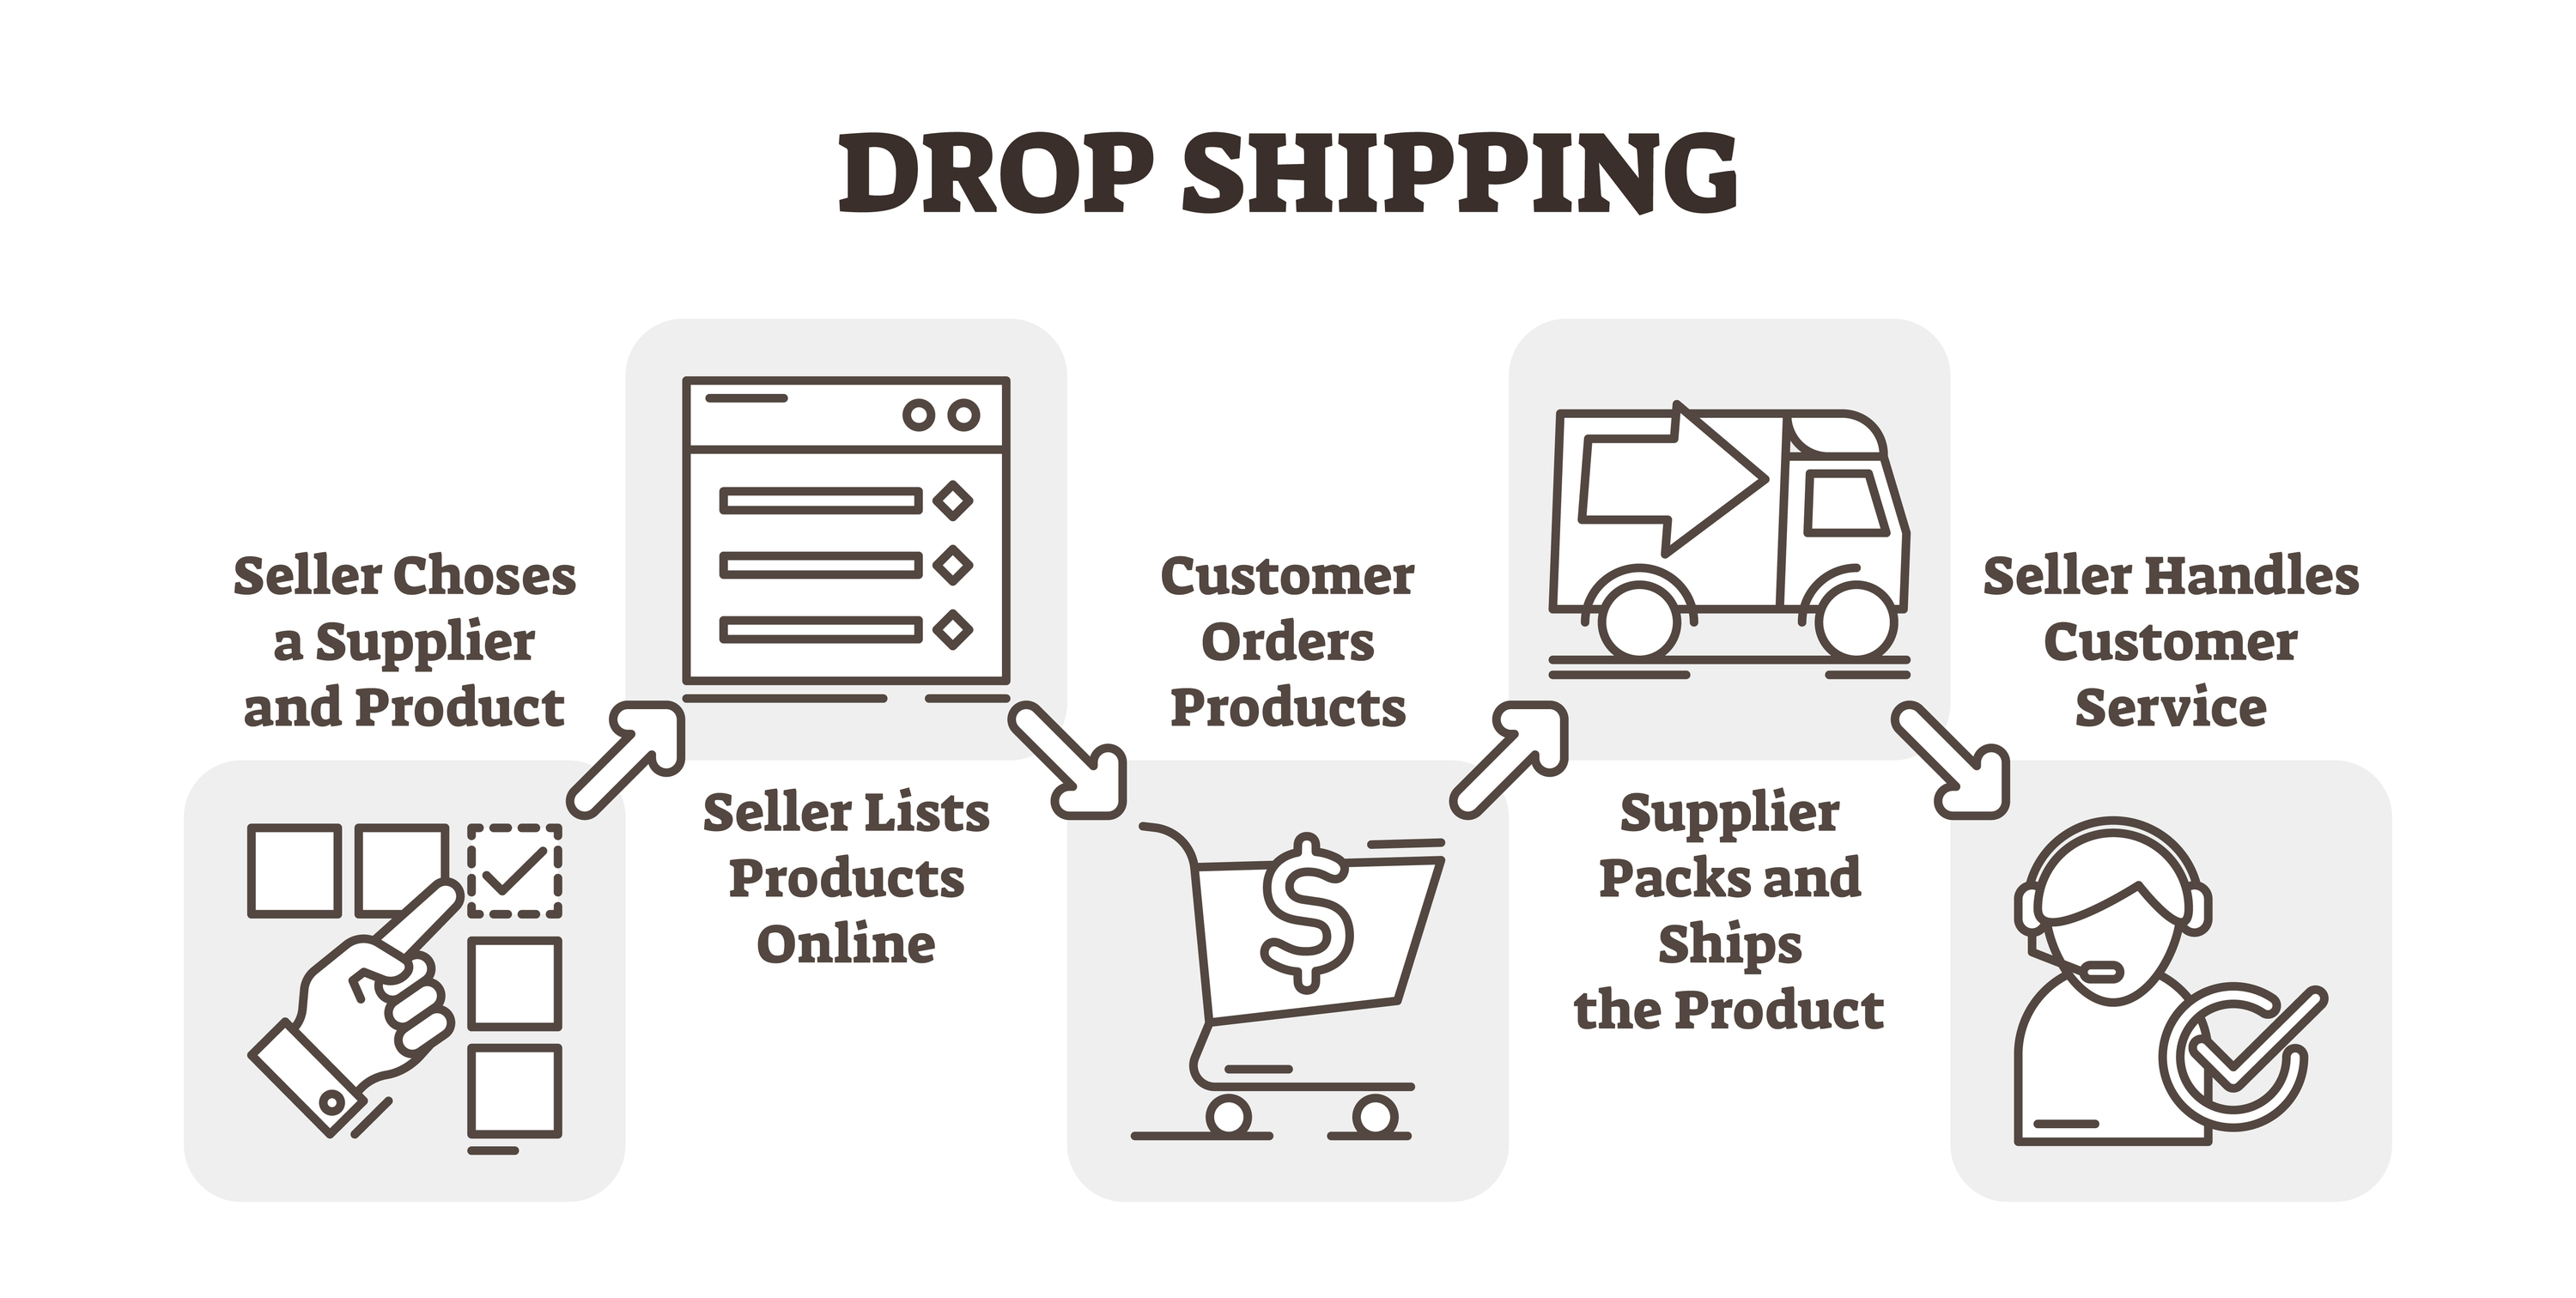 Benefits Amp Disadvantages Of Drop Shipping